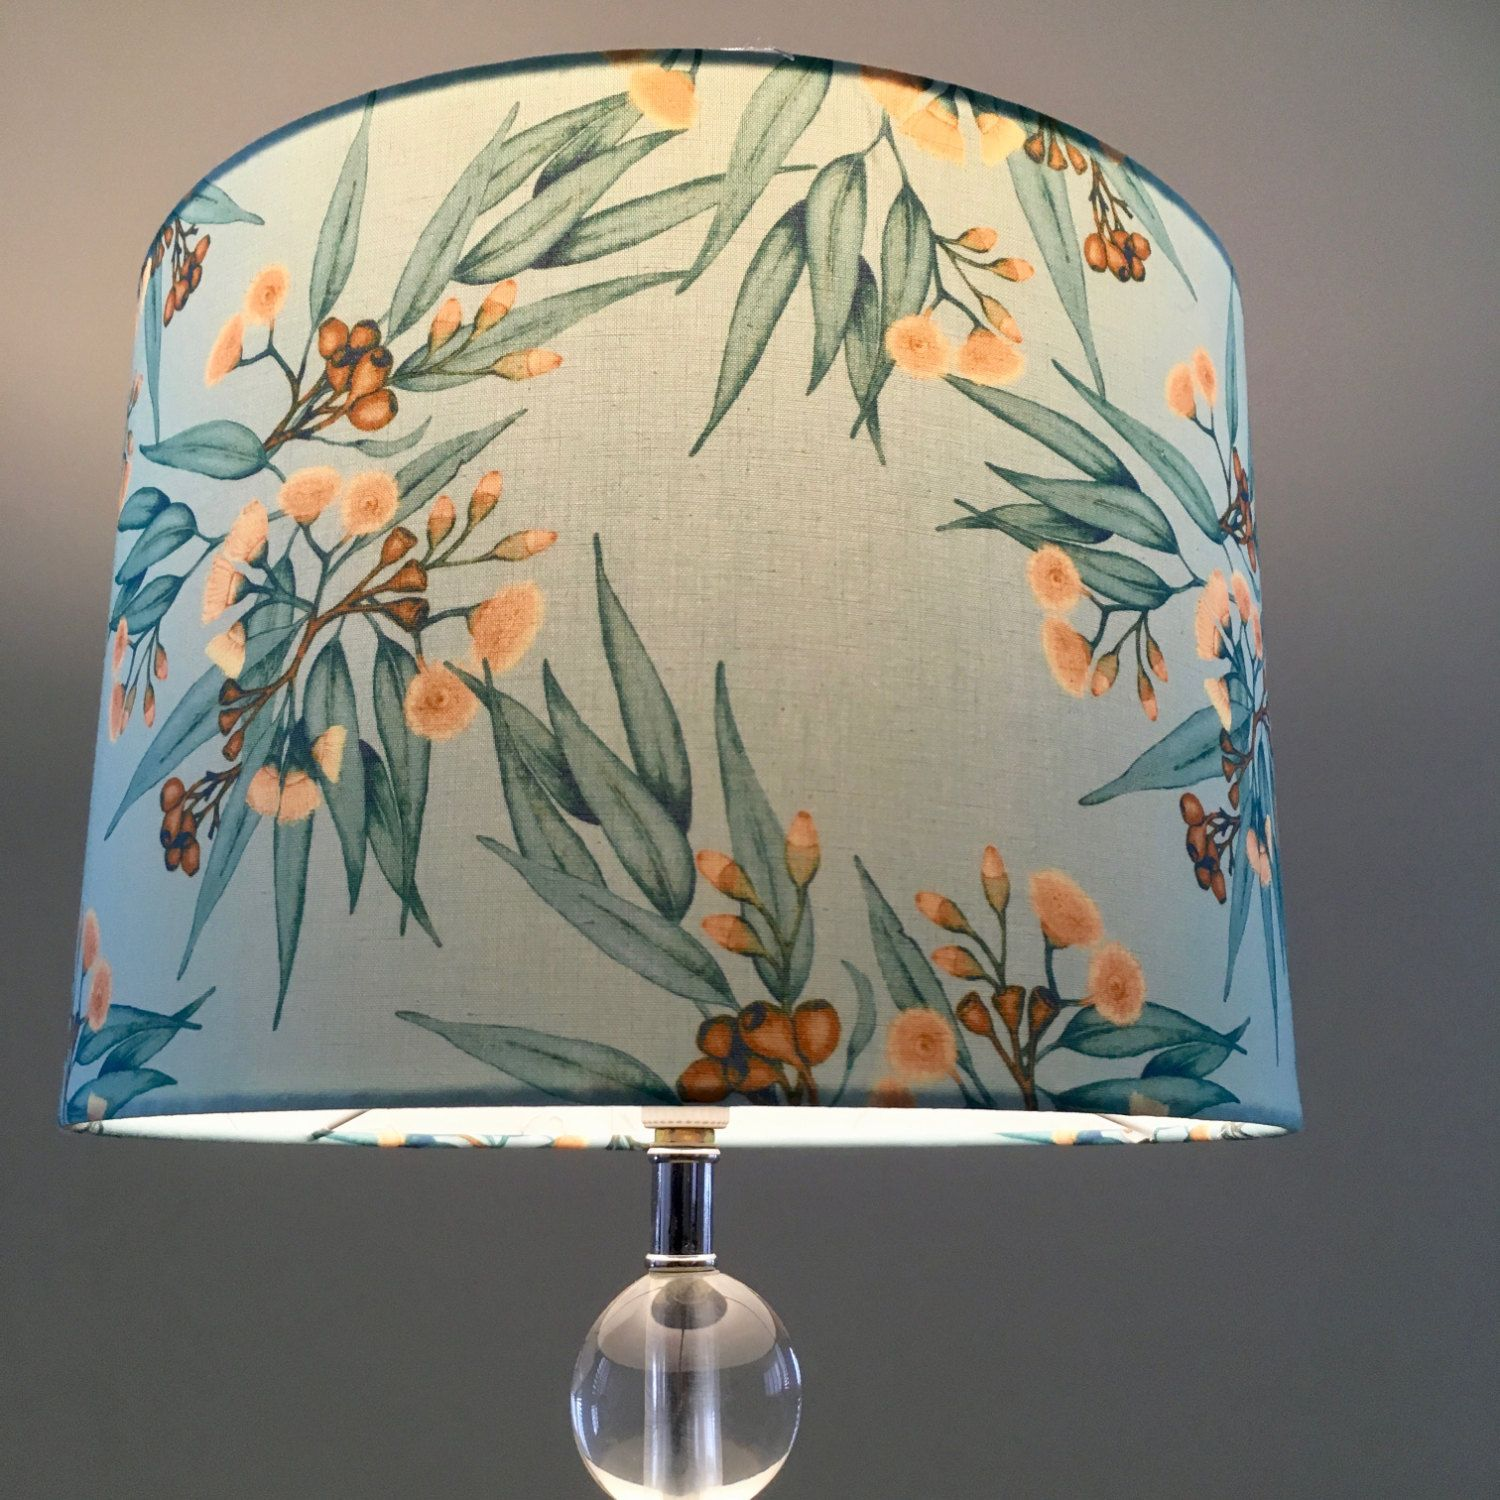 Eucalyptus And Gum Nuts Lamp Shade Mint Drum By Rooelliestudio Drum Lampshade Lamp Shade Cushions To Make